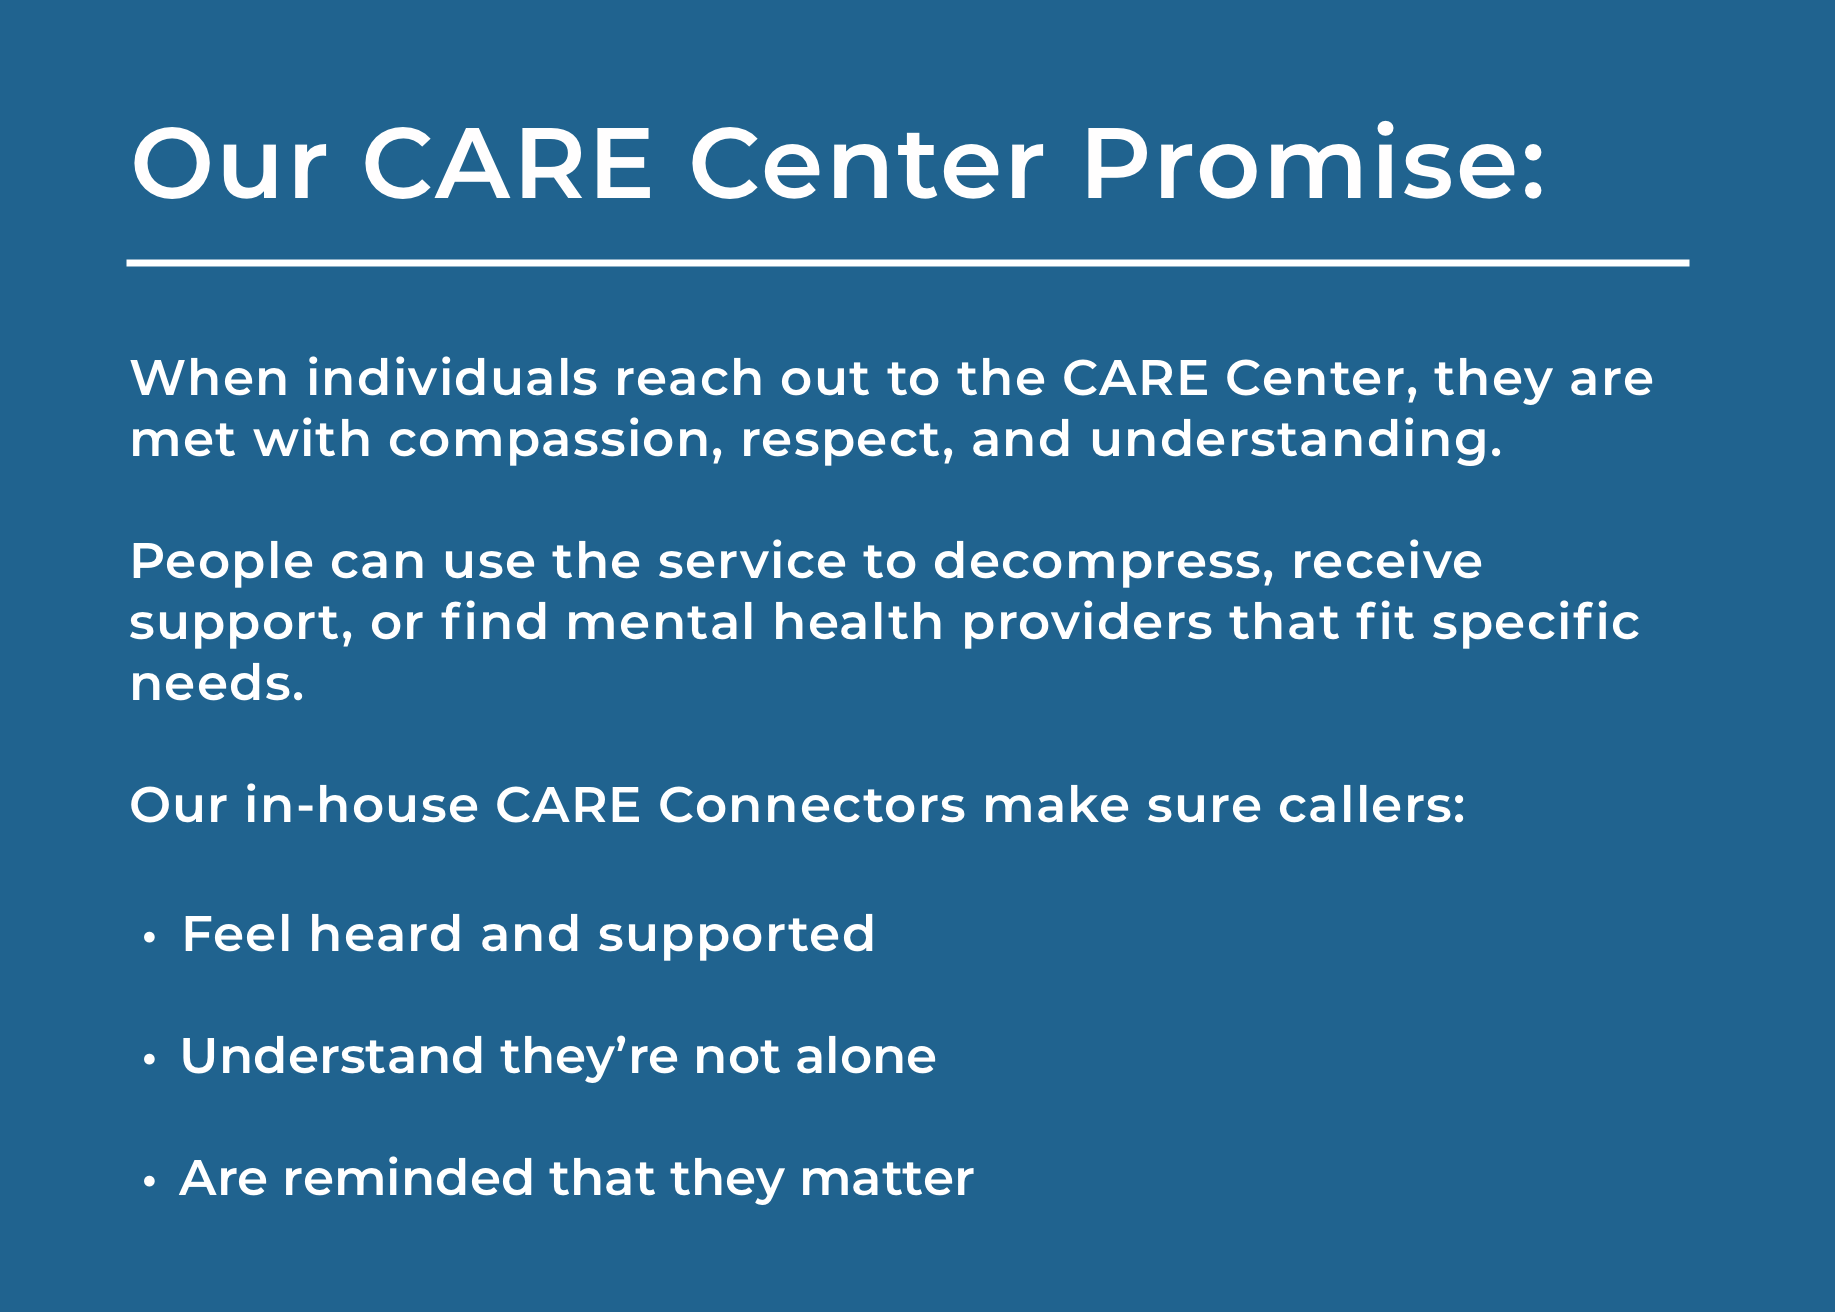 CARE Center Promise